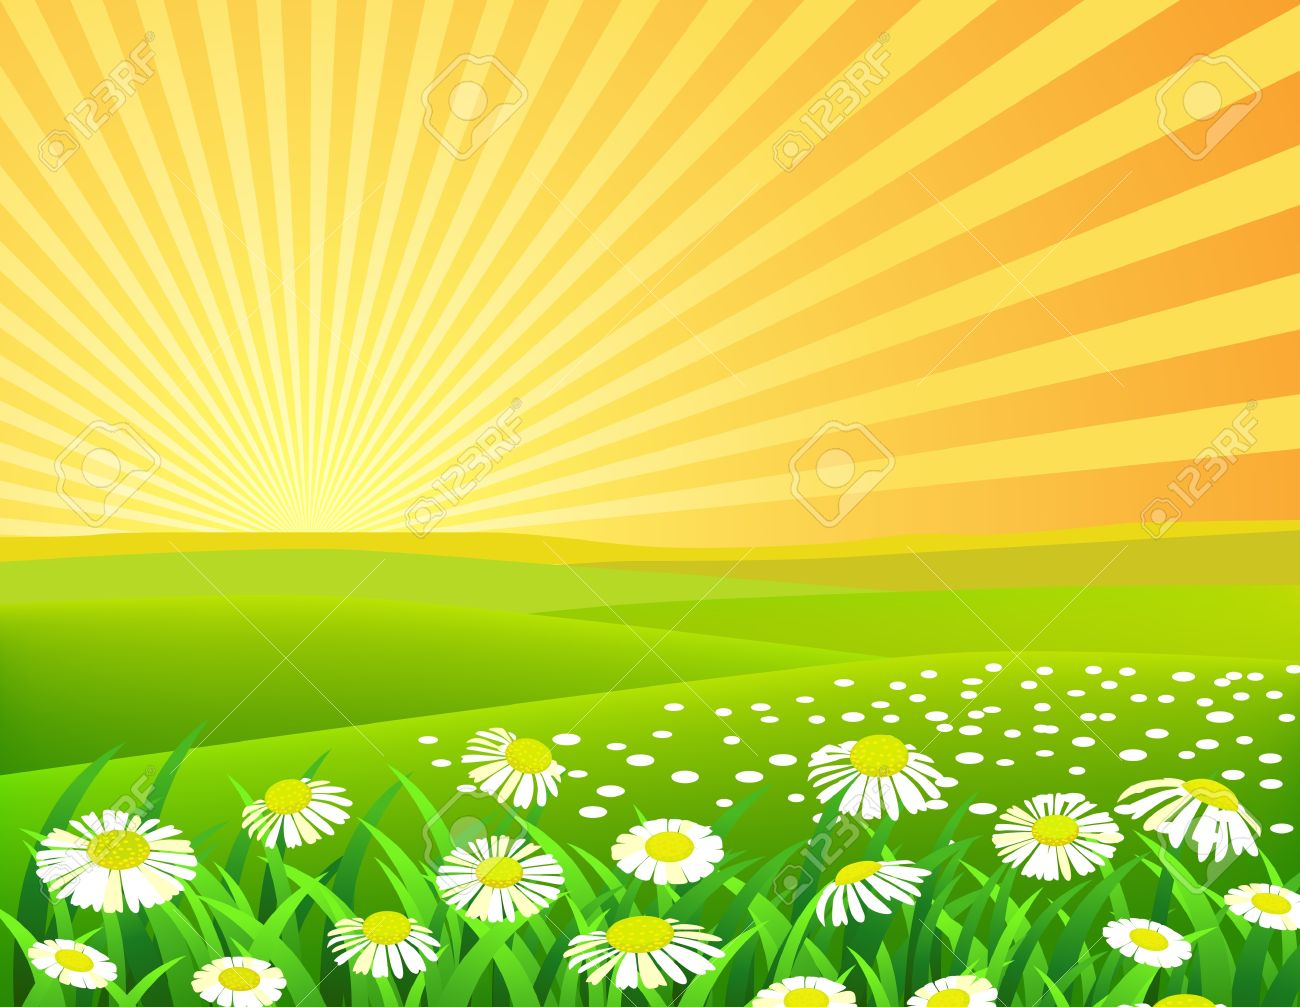 Nature Background Royalty Free Cliparts Vectors And Stock